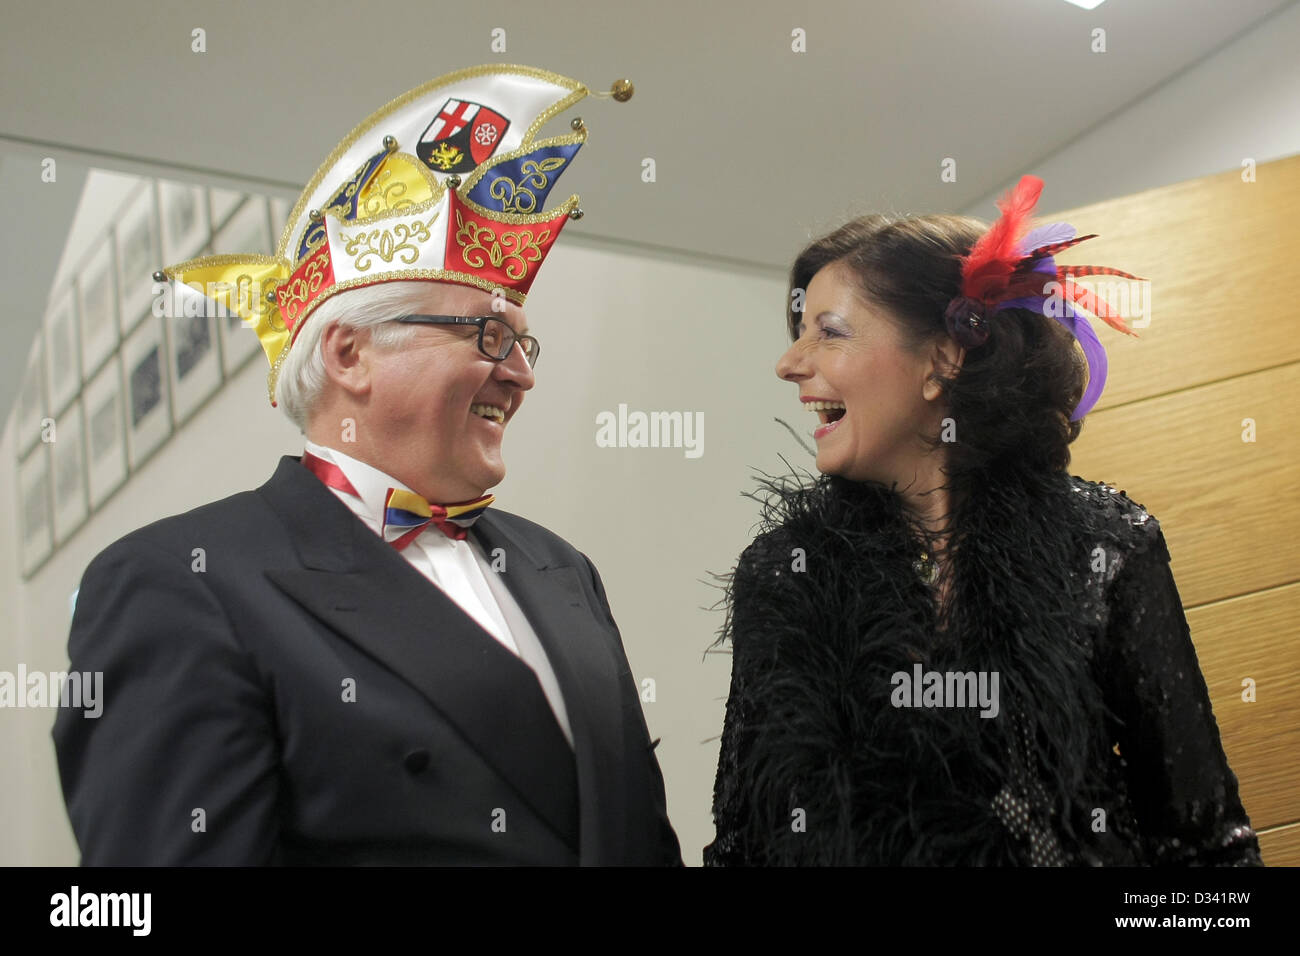 Chairman of the SPD parliamentary group at the Bundestag, FRank-Walter Steinmeier wears a fool's cap and sharea - Stock Image